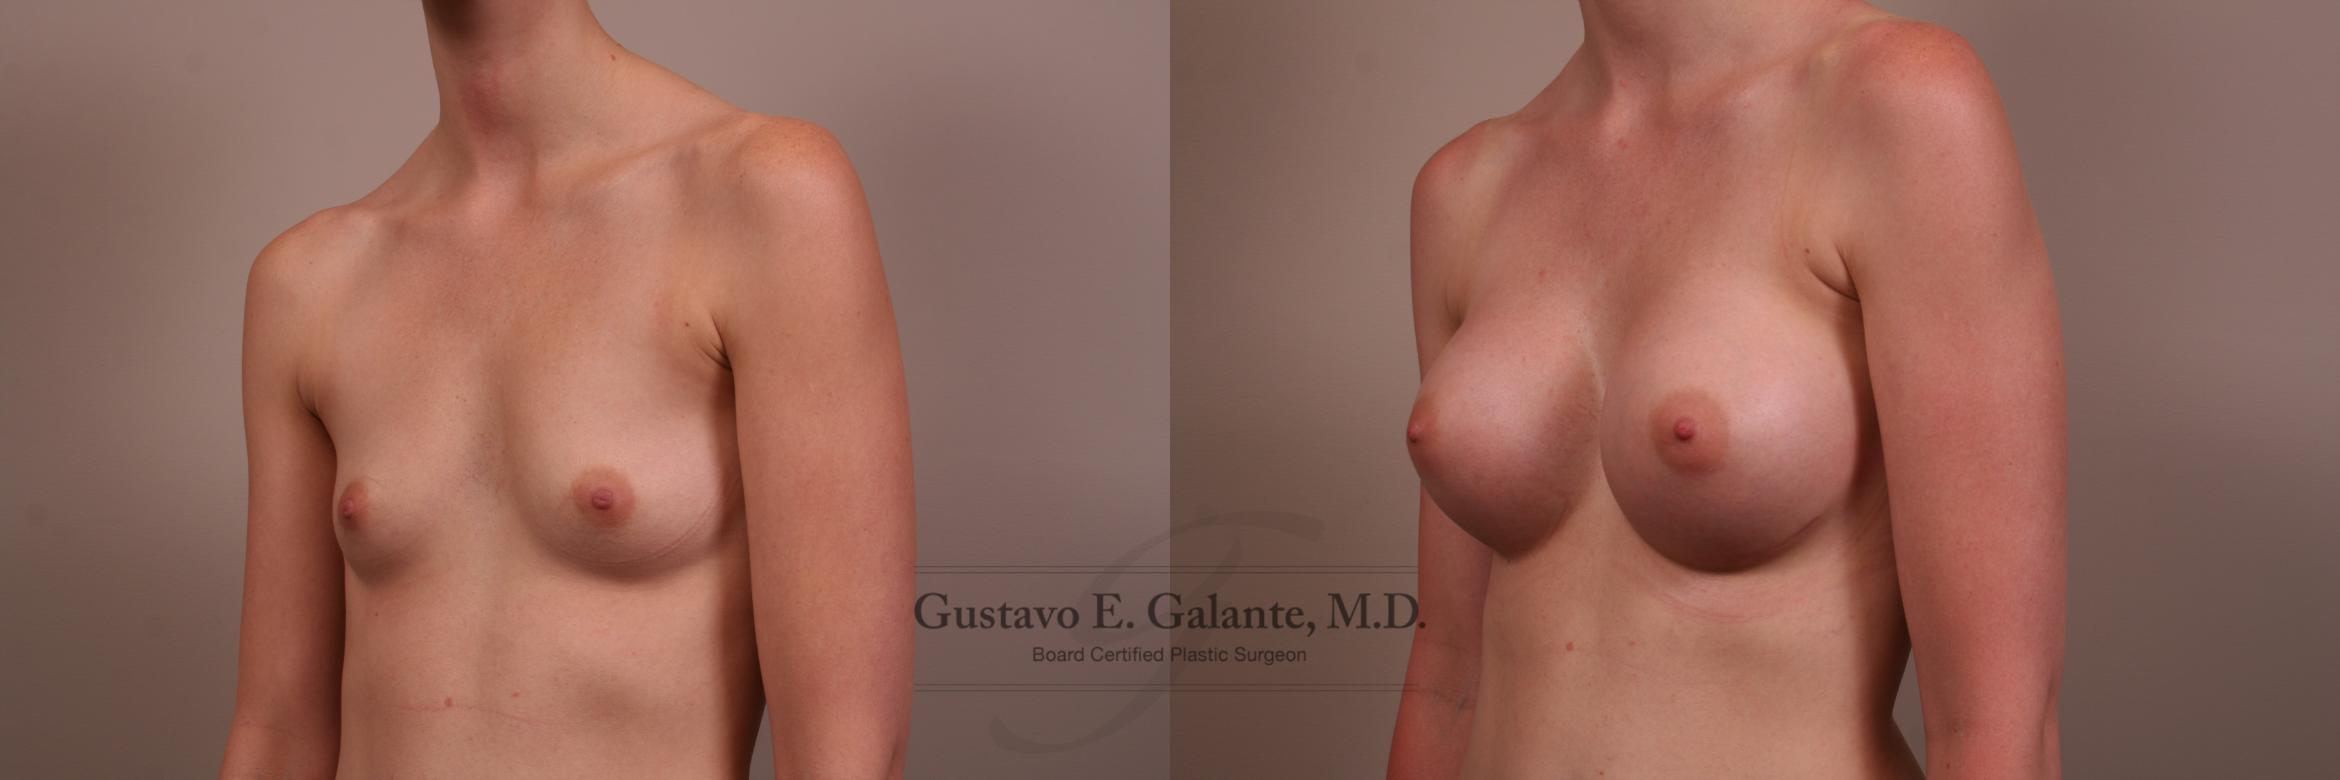 Breast Augmentation Case 123 Before & After View #2 | Valparaiso & Schererville, IN | Gustavo E. Galante, MD